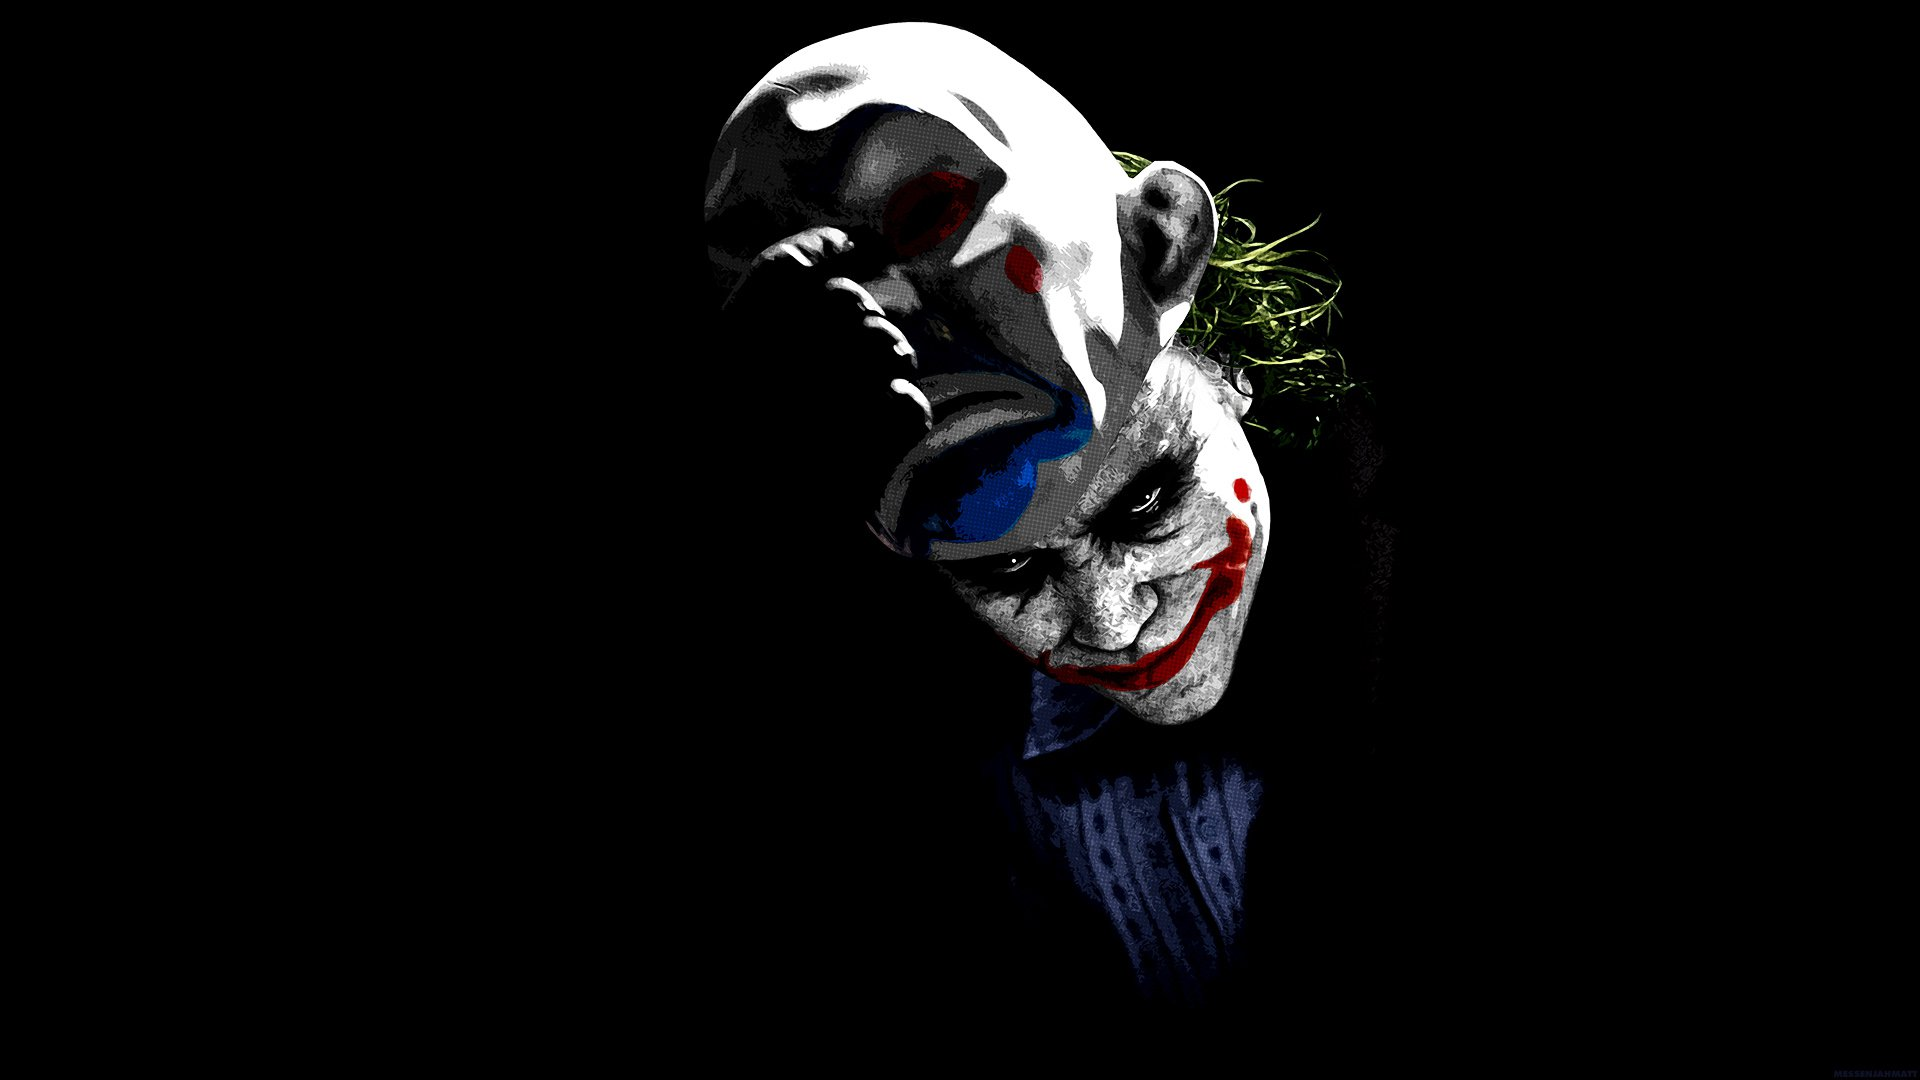 Joker Wallpaper Hd Windows 10